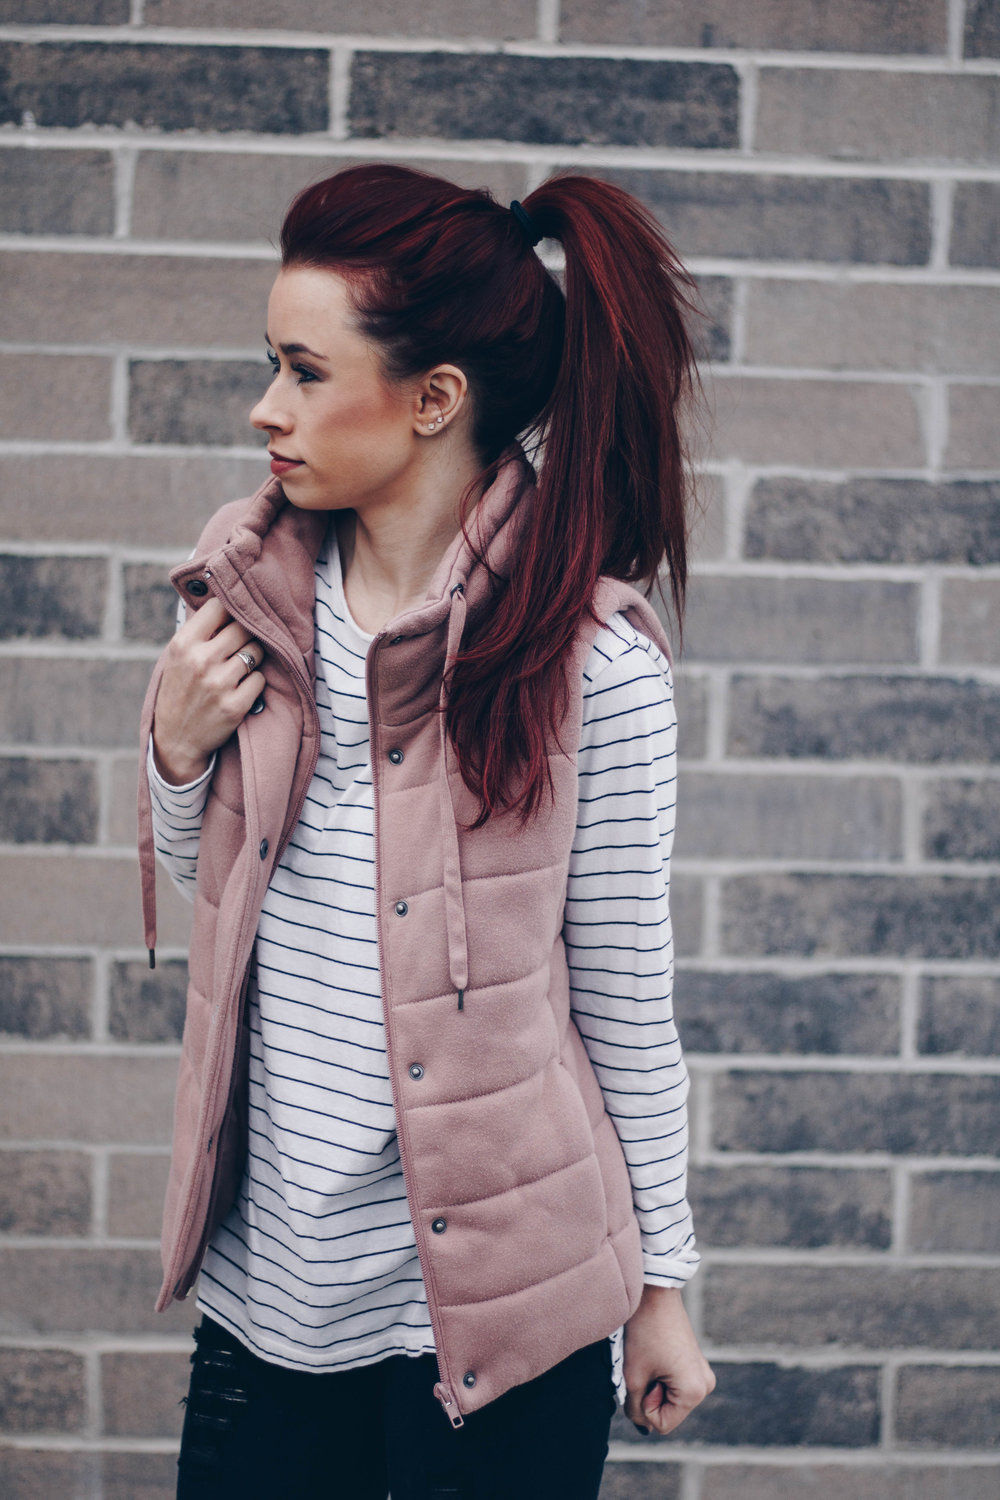 Striped top  ||  Dusty pink vest  ||  Black denim  ||  Black booties